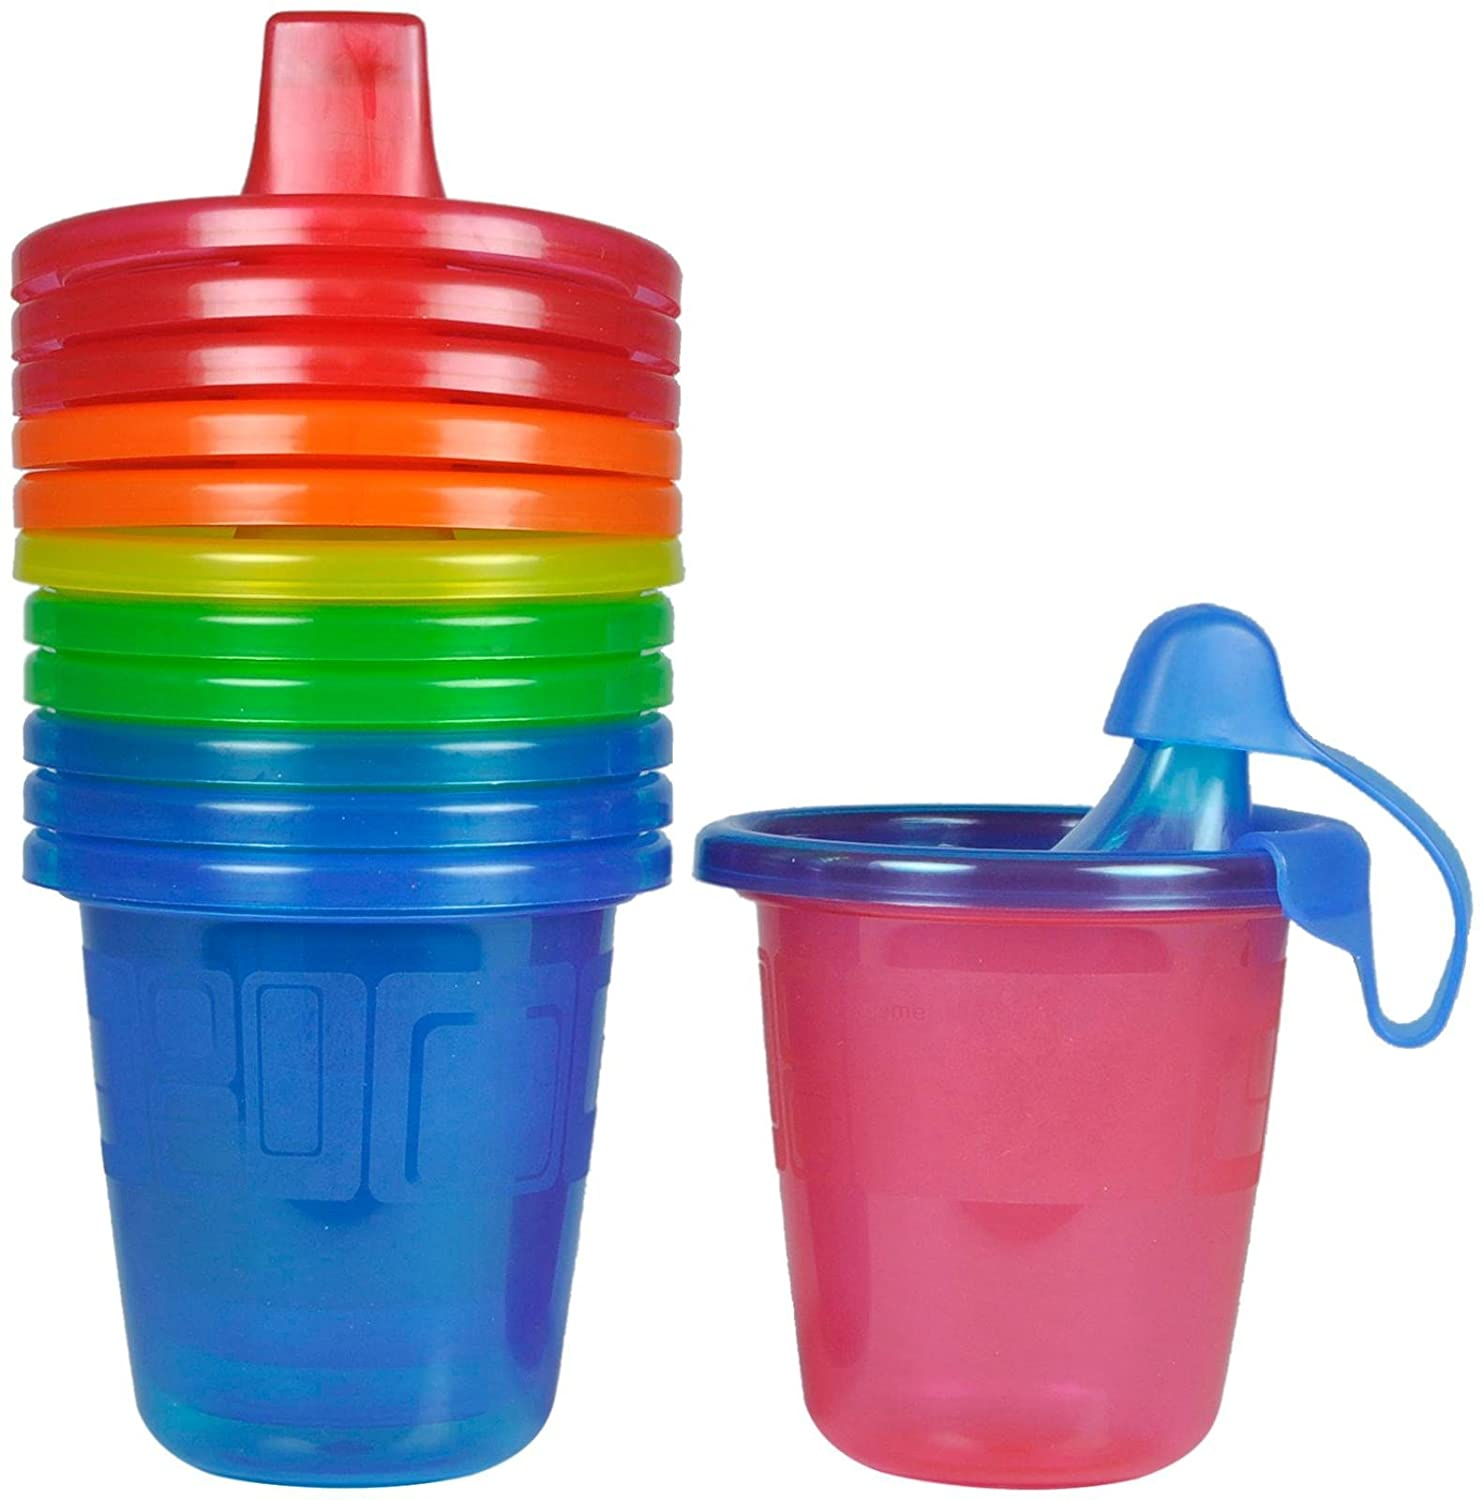 トミカチョウ The First 7 Years Spill-Proof Take & oz Toss Spill-Proof Sippy Cups - Multicolor - 7 oz - 6 ct by The First Years B00LSOWEX8, チネンソン:285f0b08 --- a0267596.xsph.ru